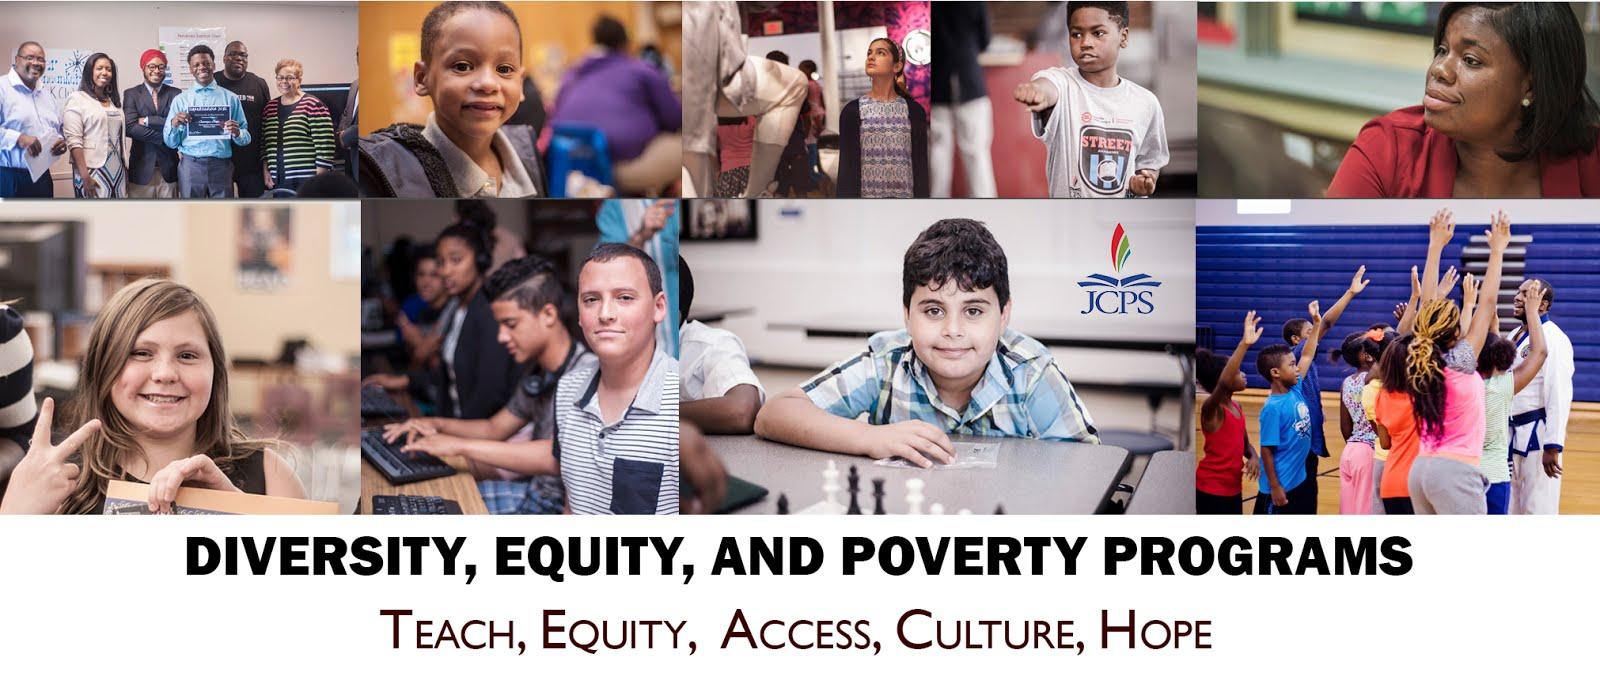 JCPS Diversity, Equity, and Poverty Programs